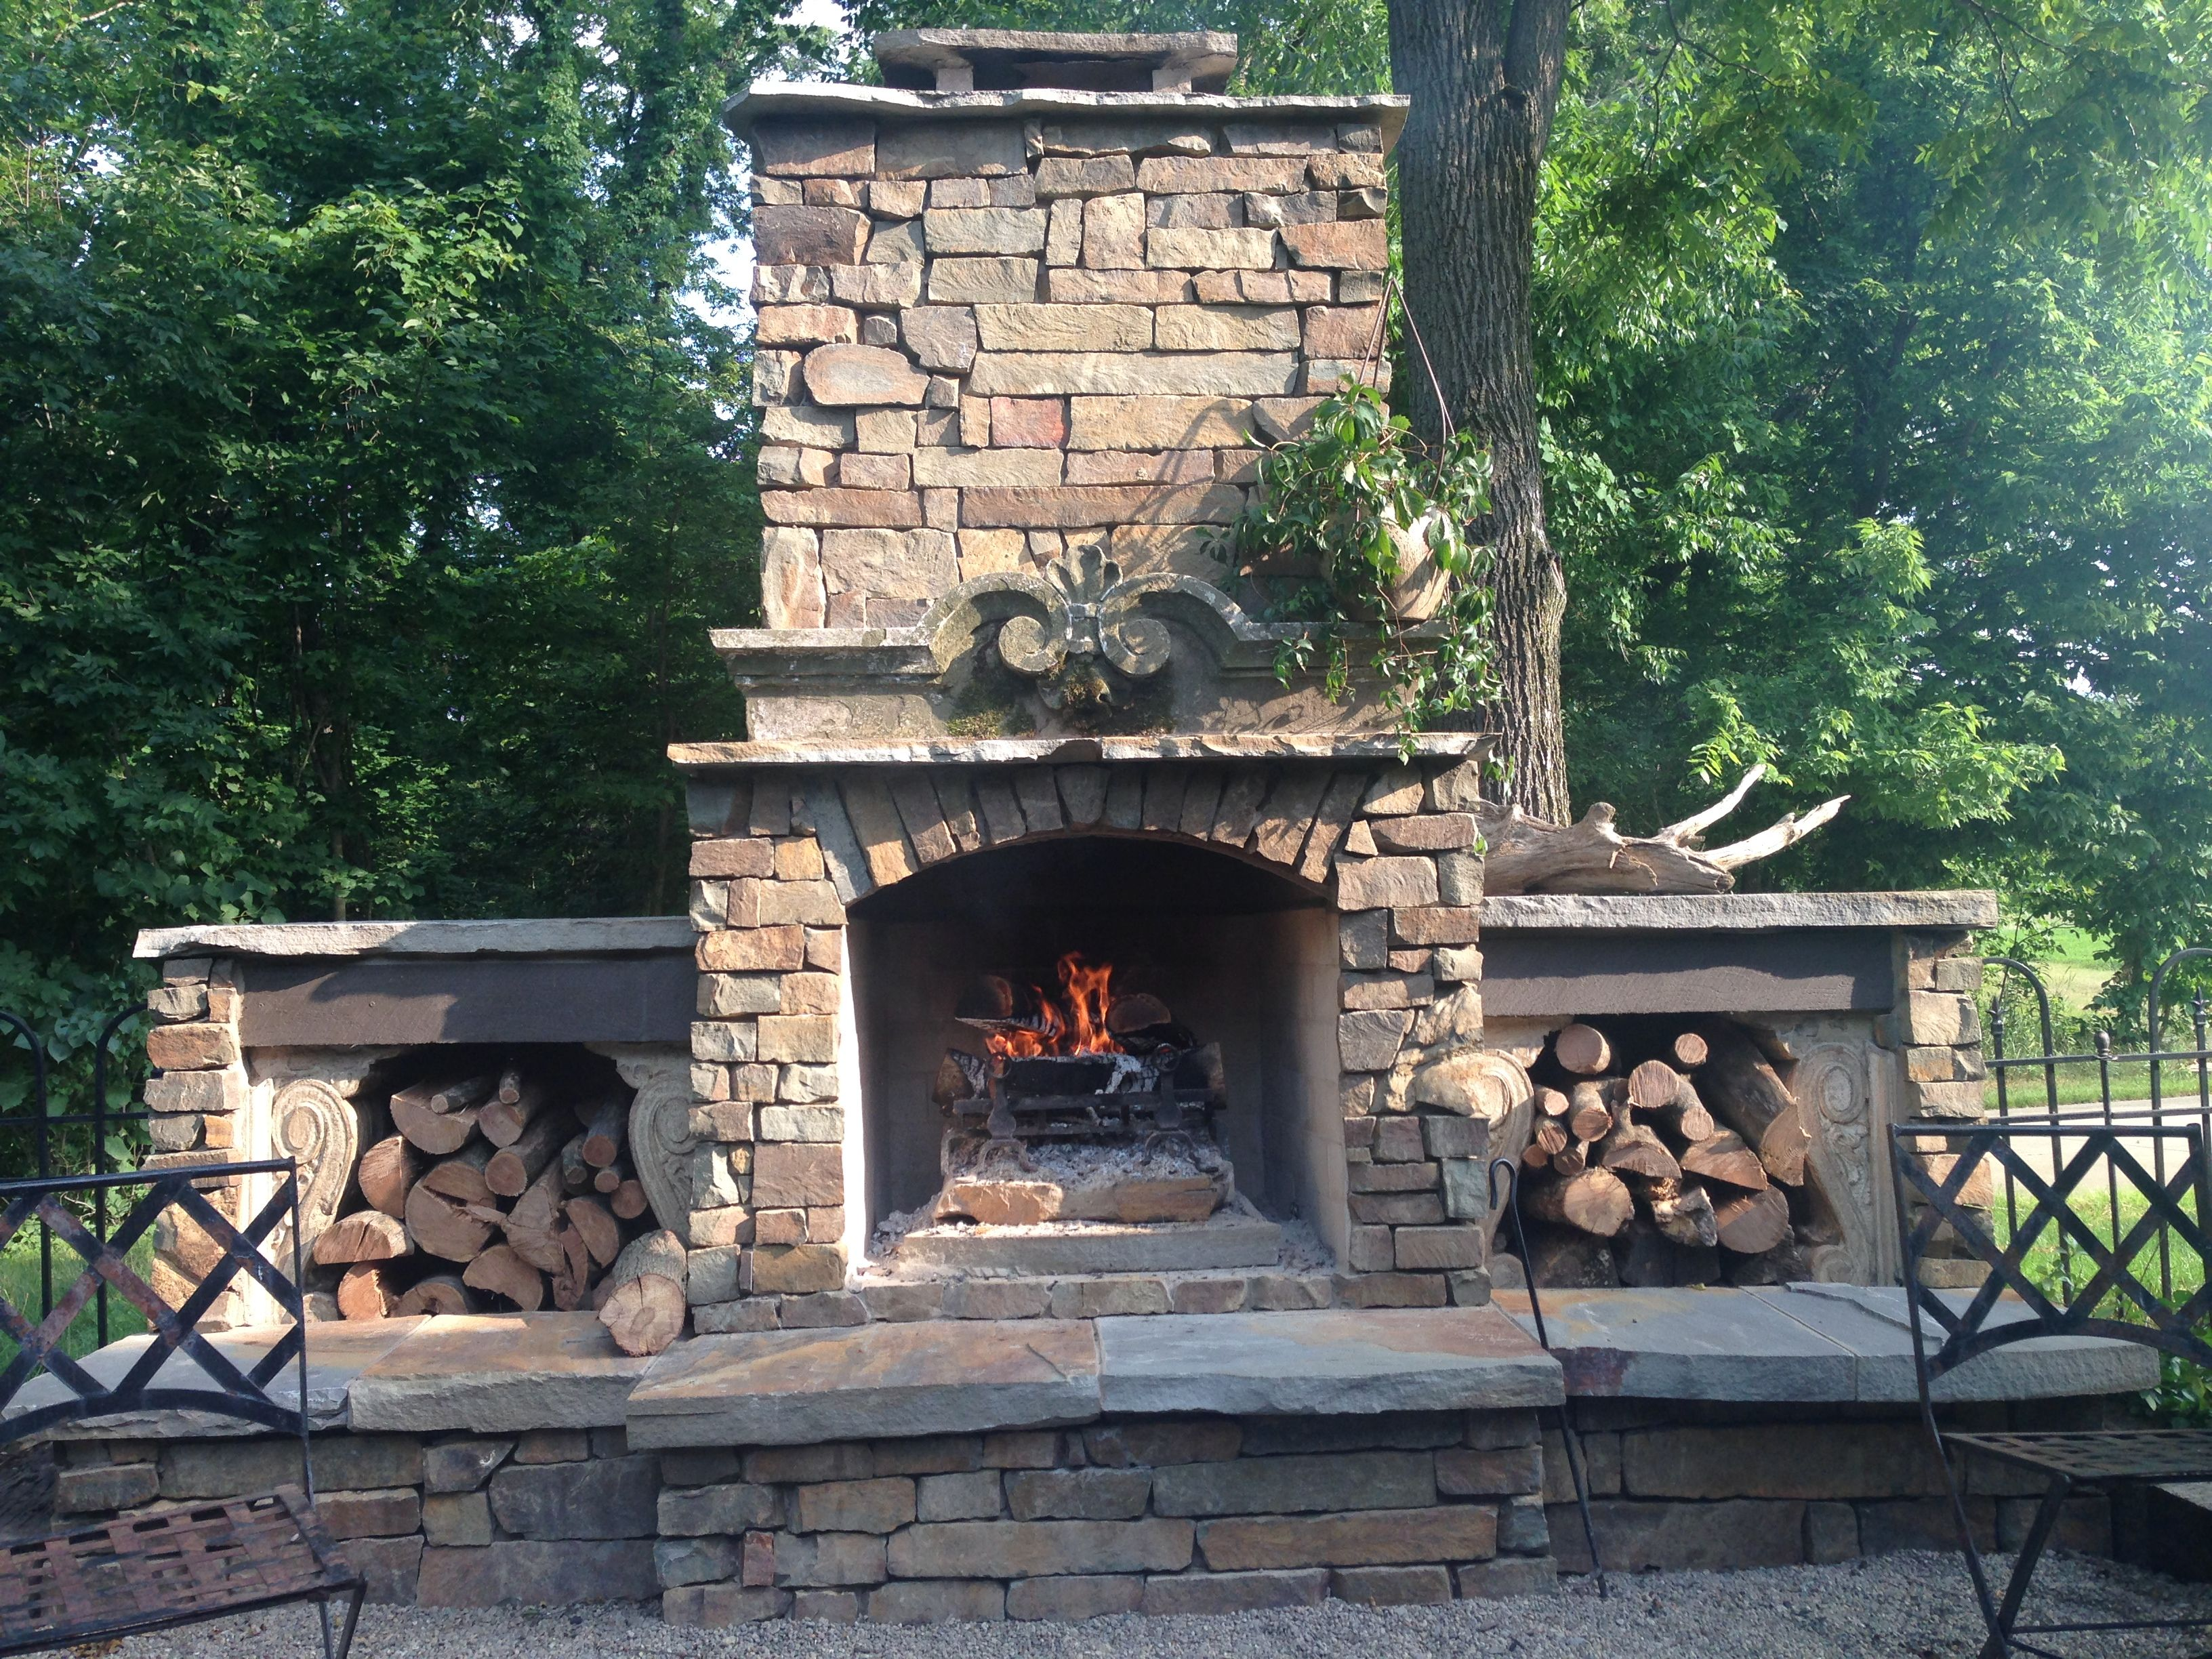 Outdoor King Arthur Fireplace With Side Storage Boxes